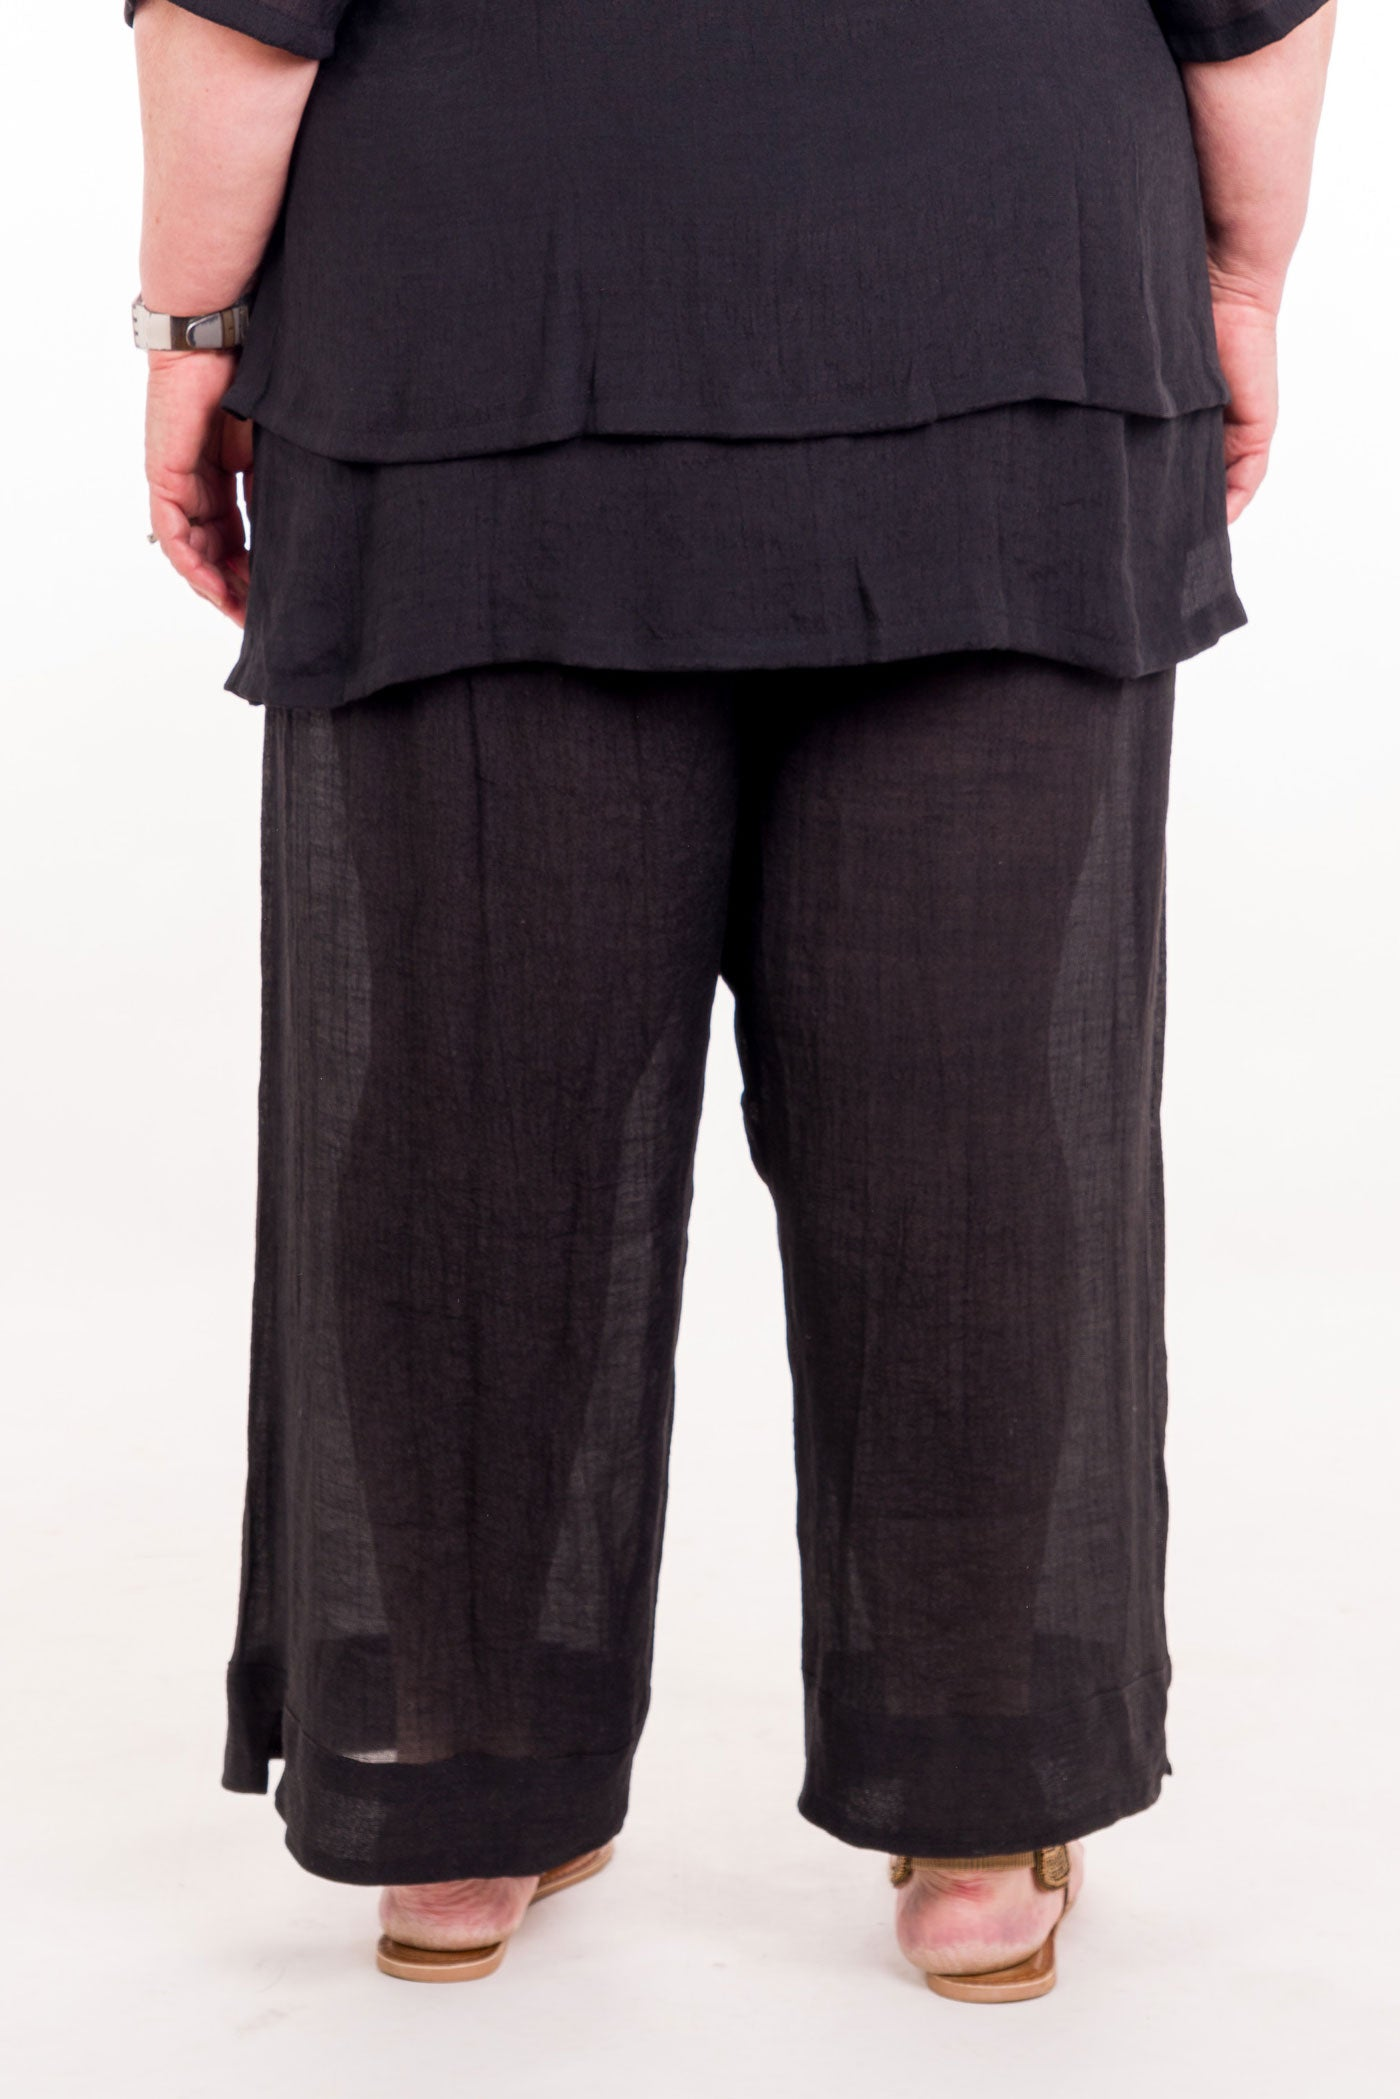 Single Layer Pants